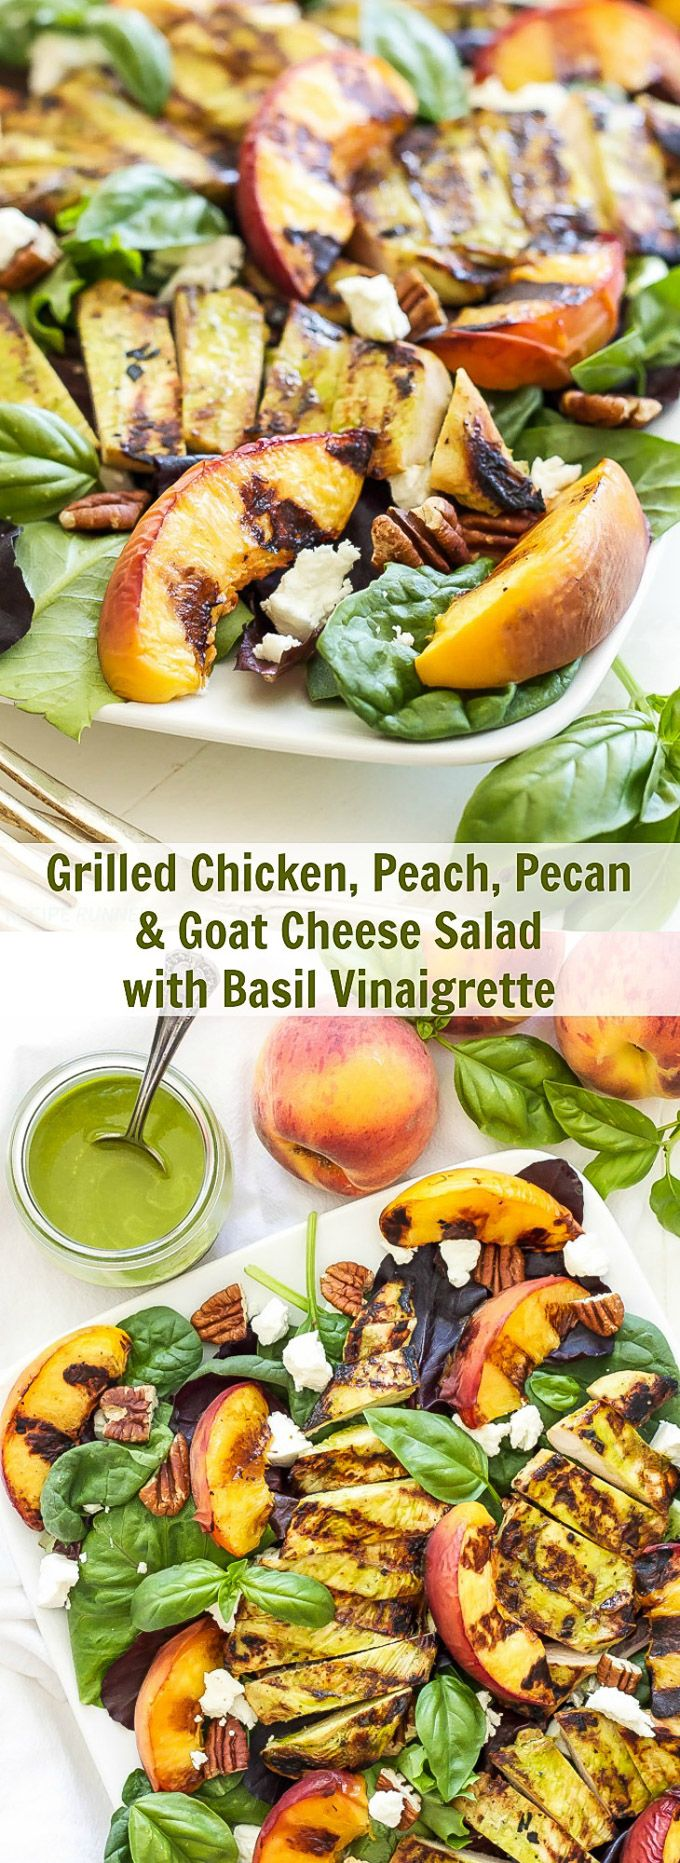 Grilled Chicken, Peach, Pecan, and Goat Cheese Salad with Basil Vinaigrette | Basil Vinaigrette doubles as a marinade for the grilled chicken in the super flavorful summer salad!